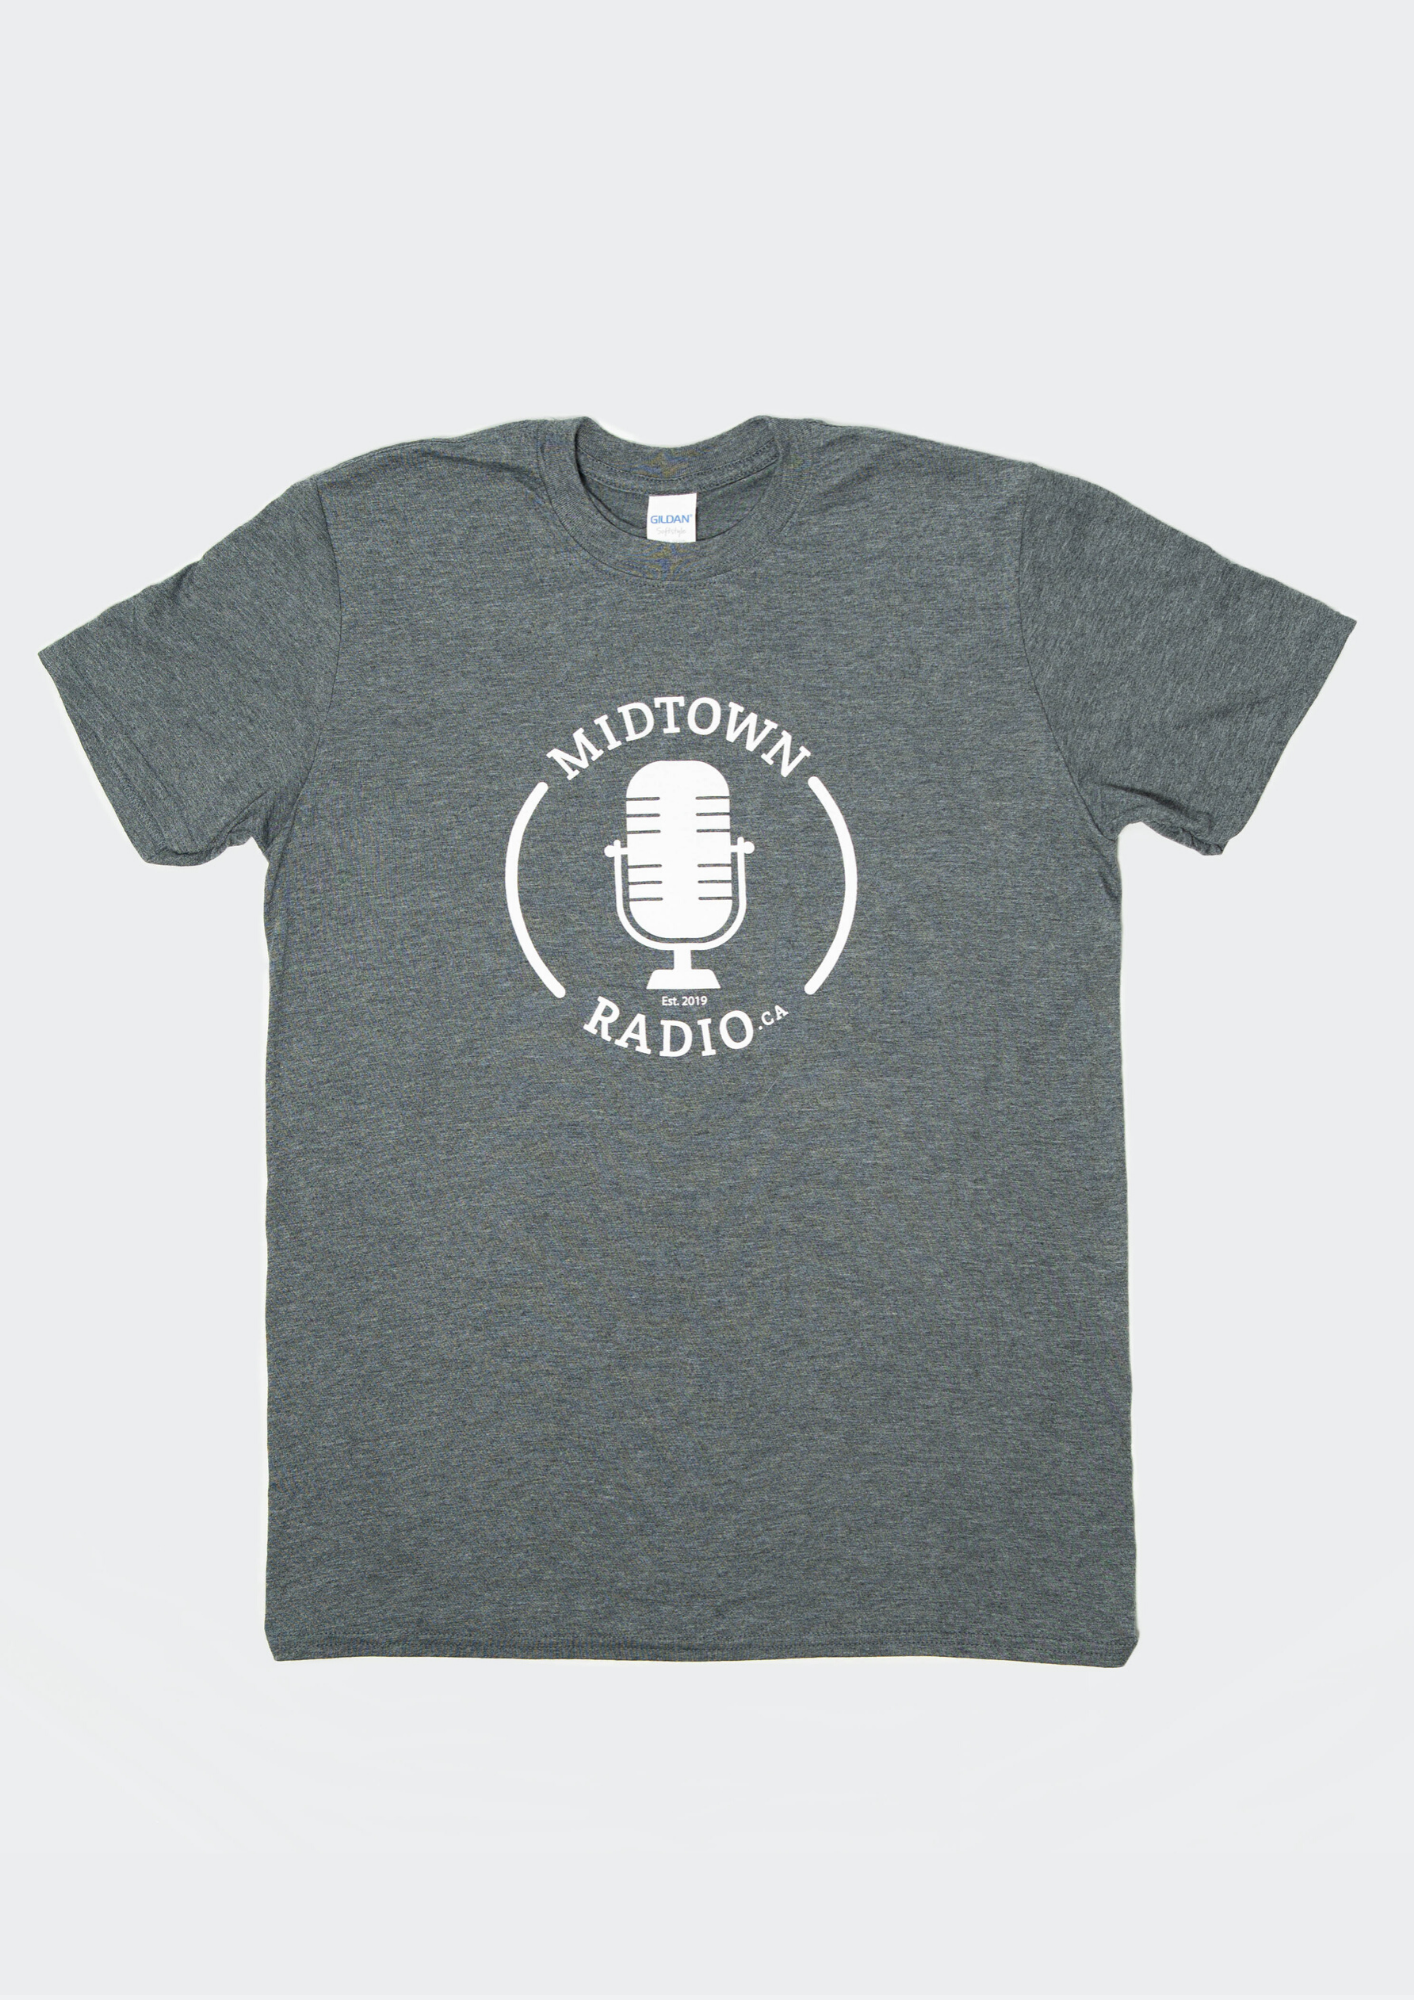 grey logo t-shirt with 'midtown radio' text with white graphic microphone